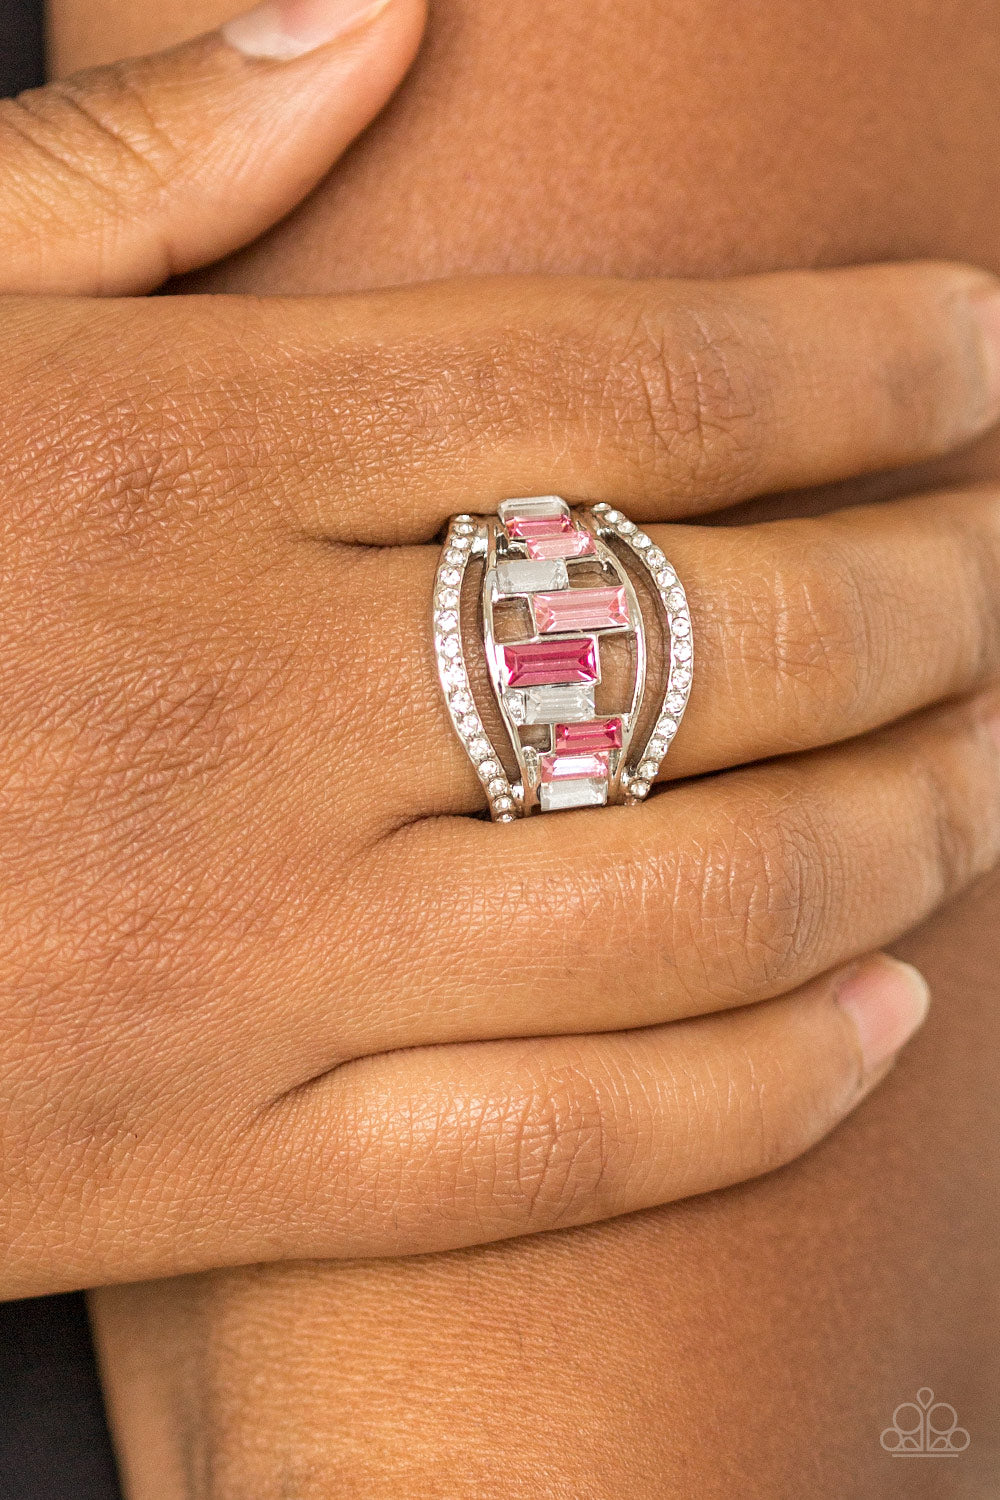 Treasure Chest Charm - pink - Paparazzi ring